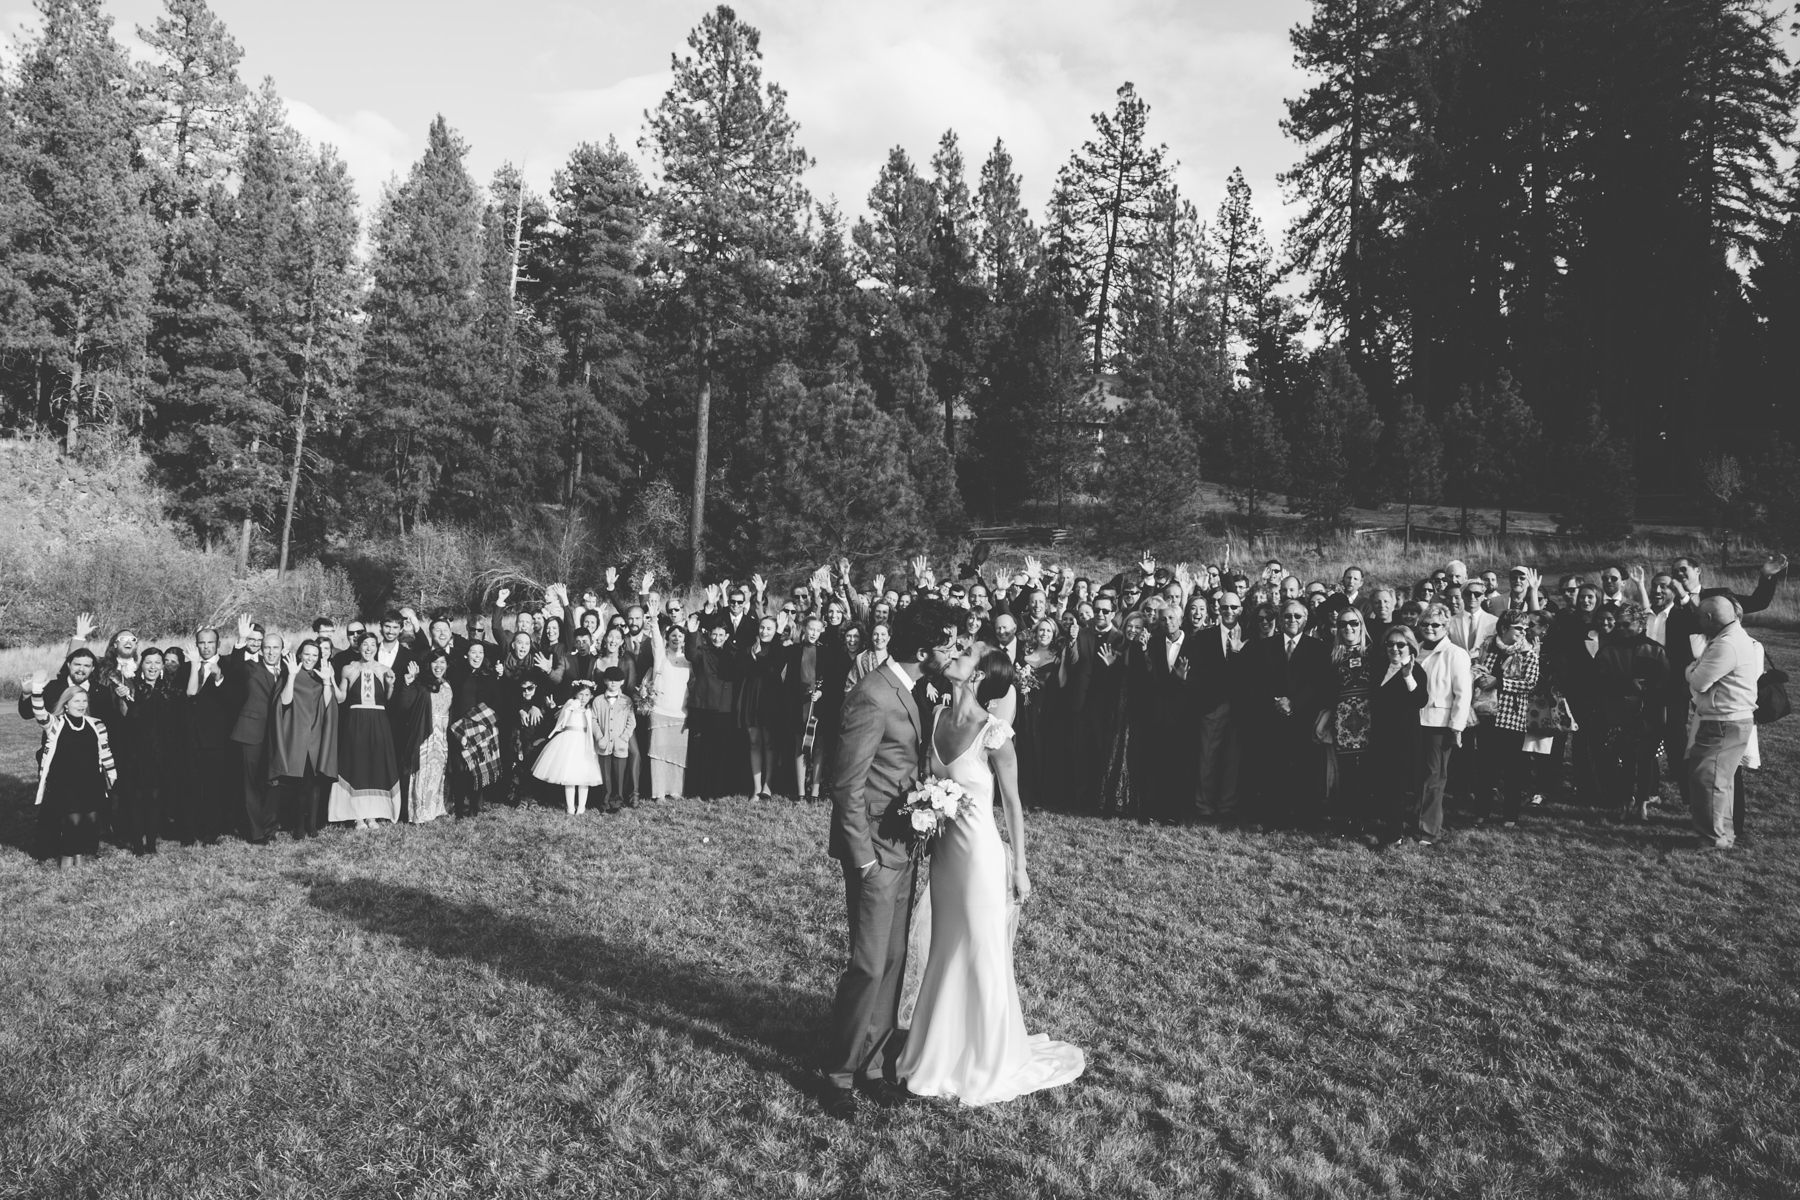 houseonmetoliuswedding-676.jpg